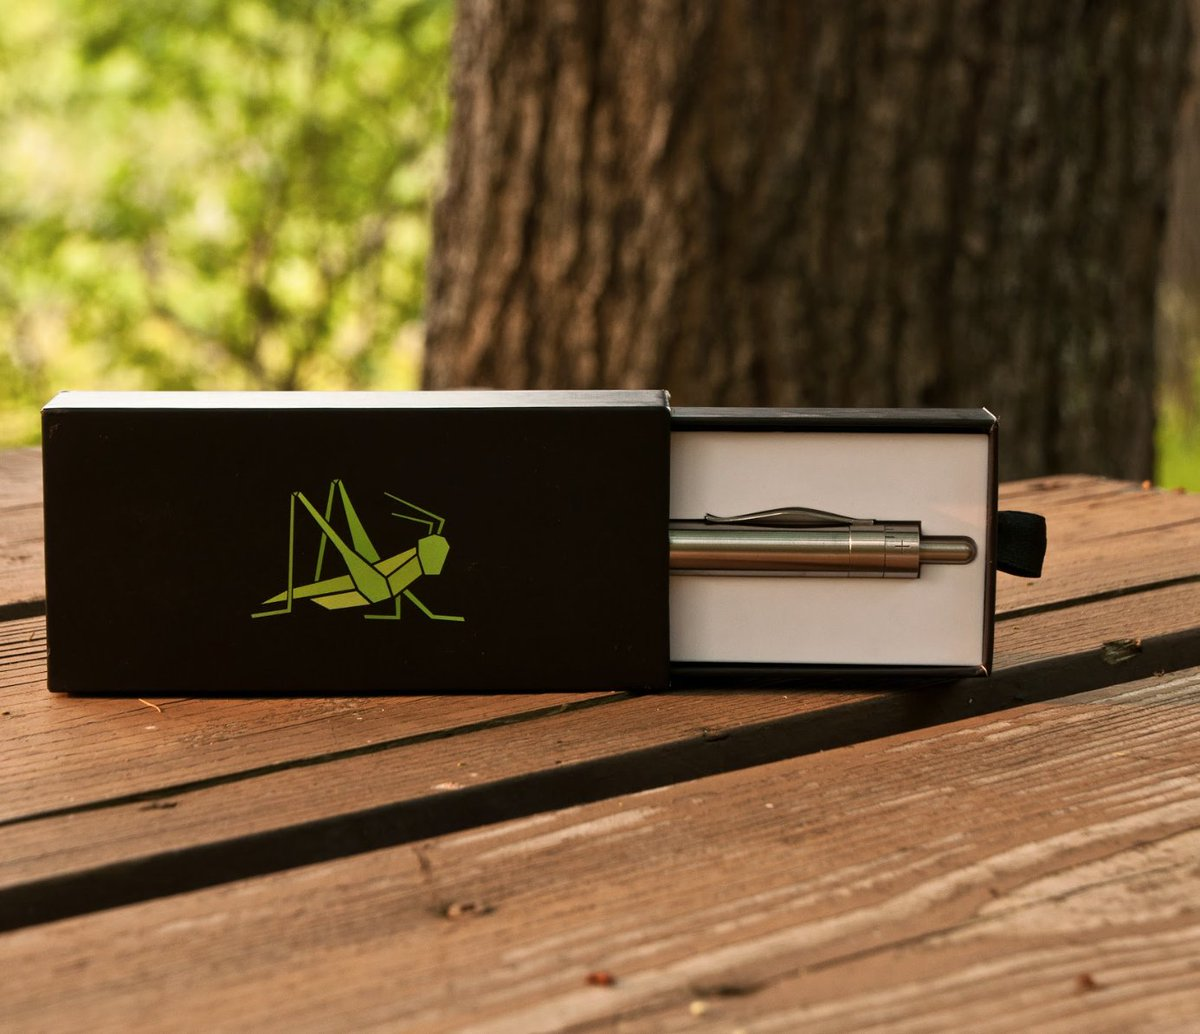 Grasshoppervape tagged Tweets and Download Twitter MP4